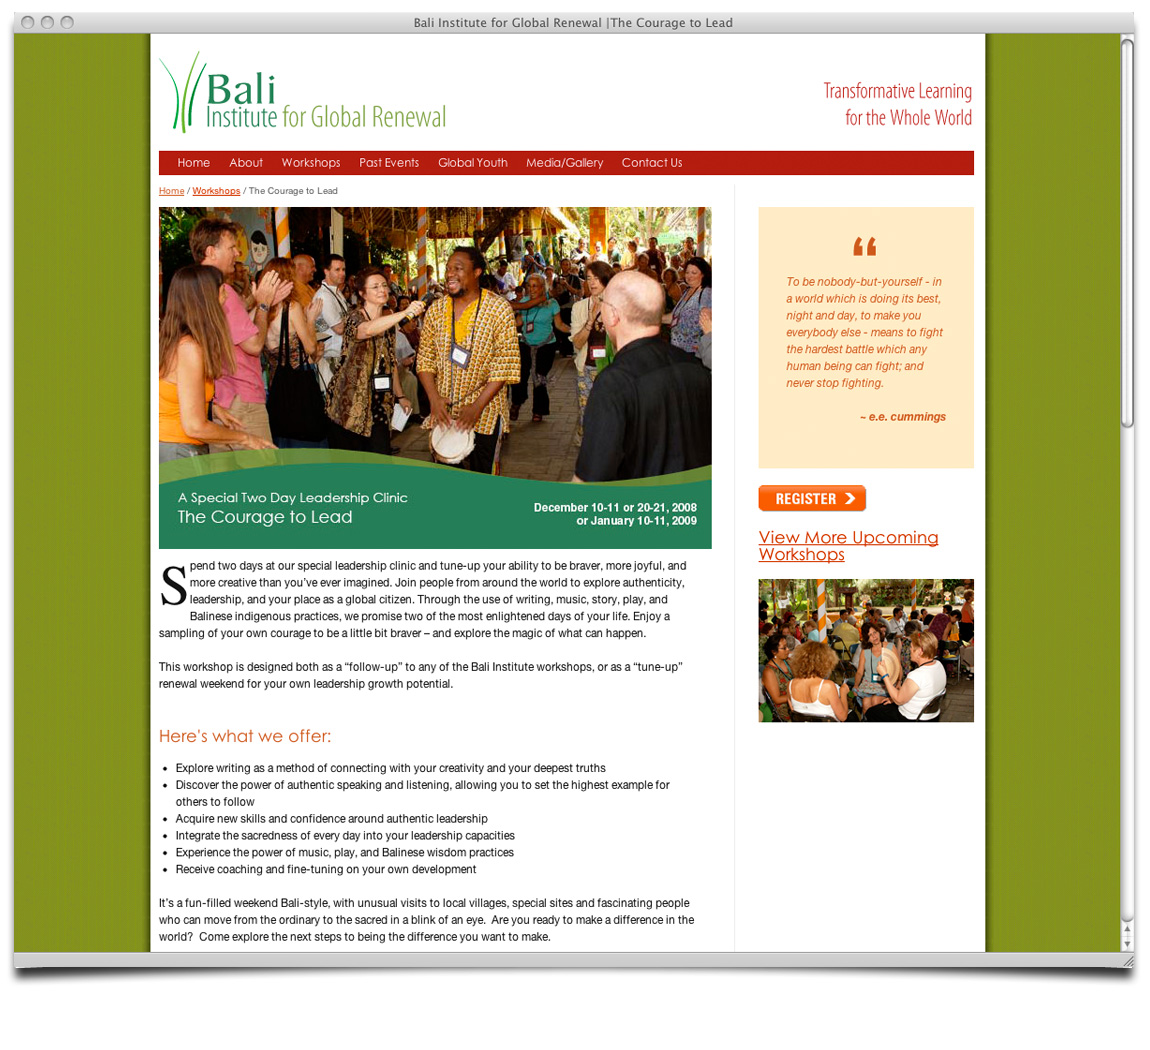 Bali Institute for Global Renewal Detail Page